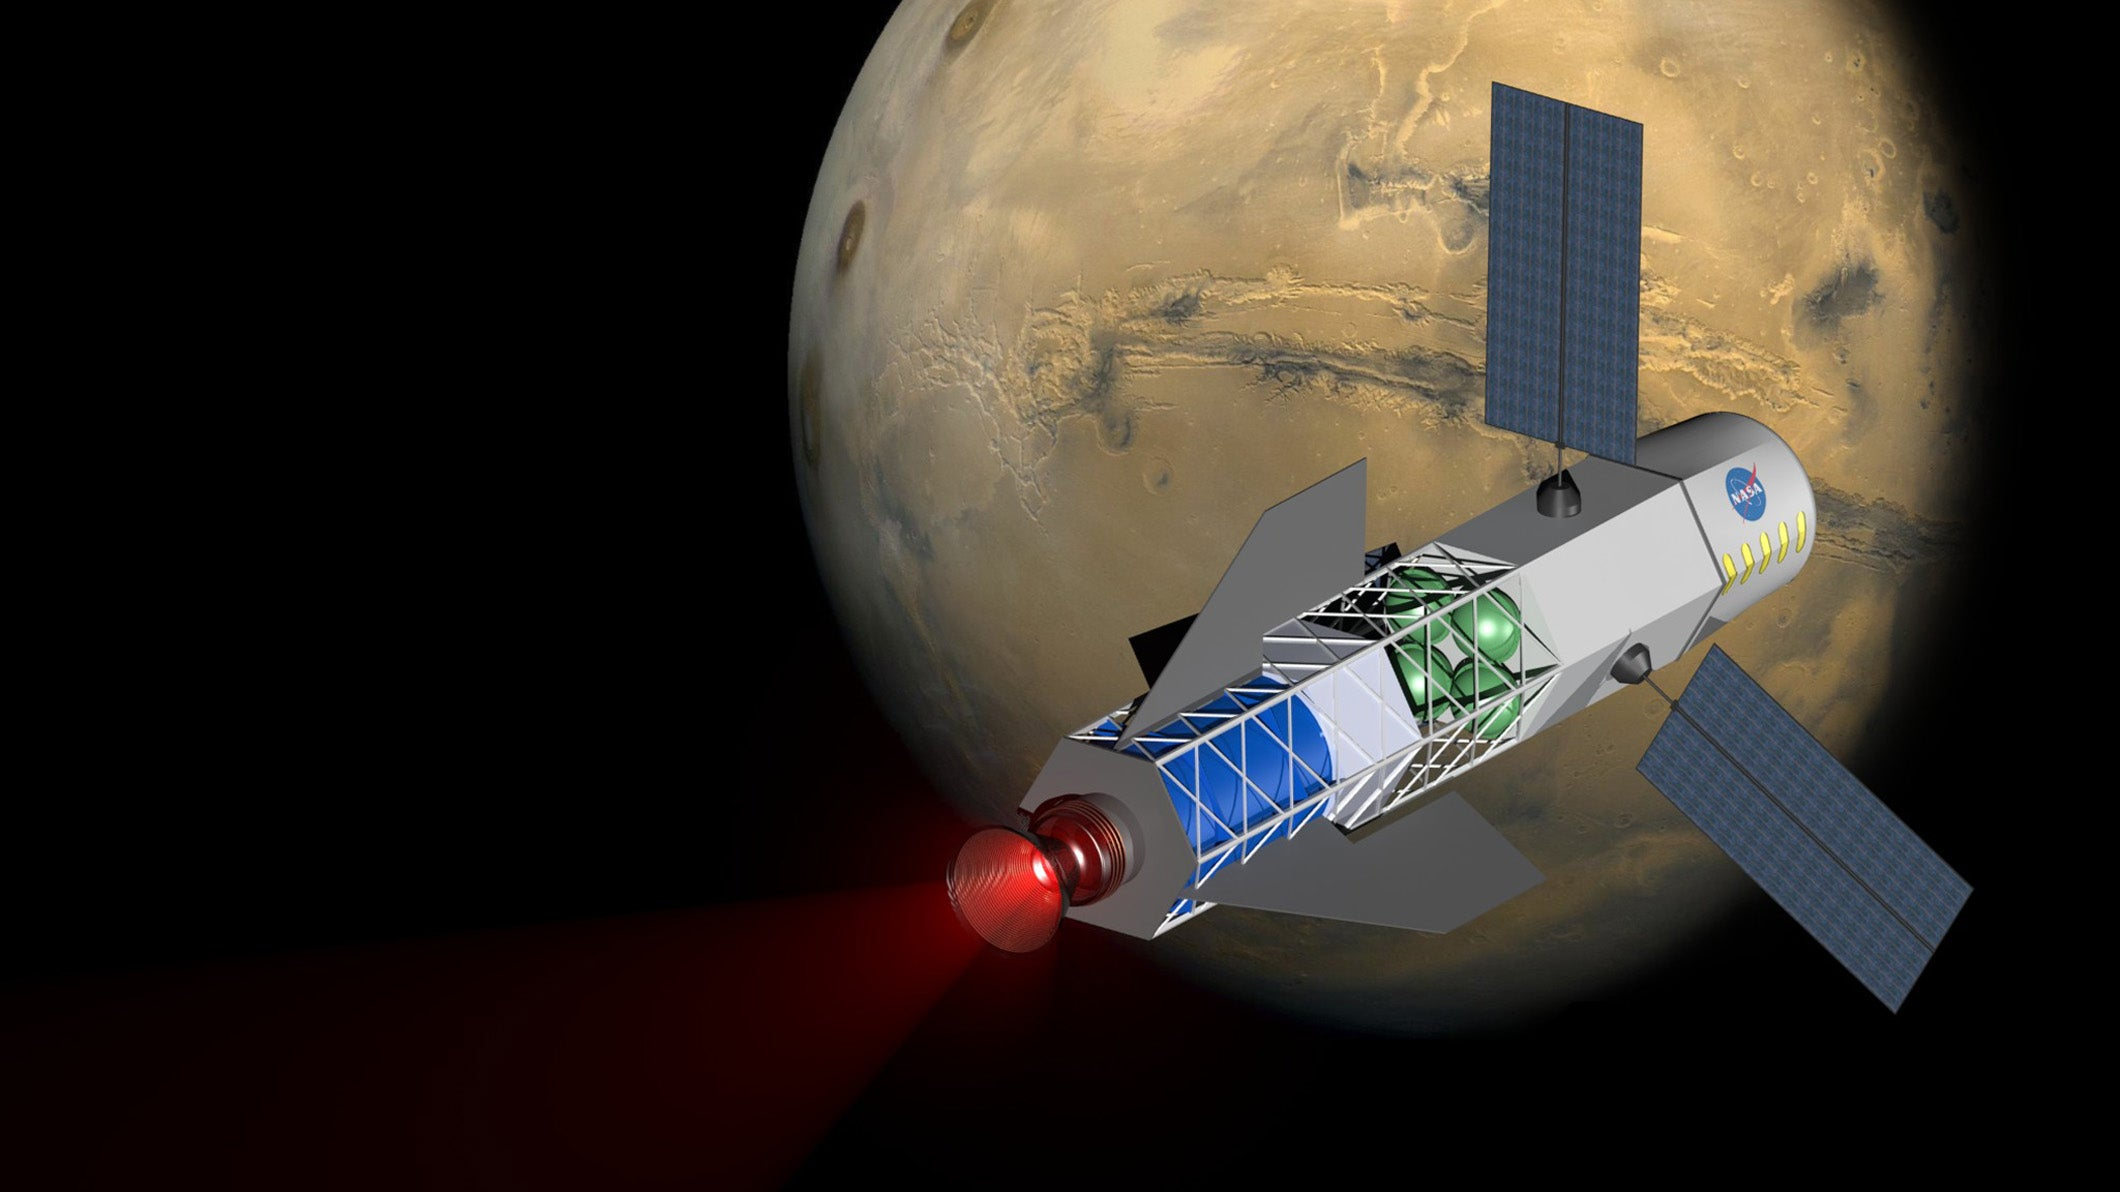 fusion rocket flies around Mars